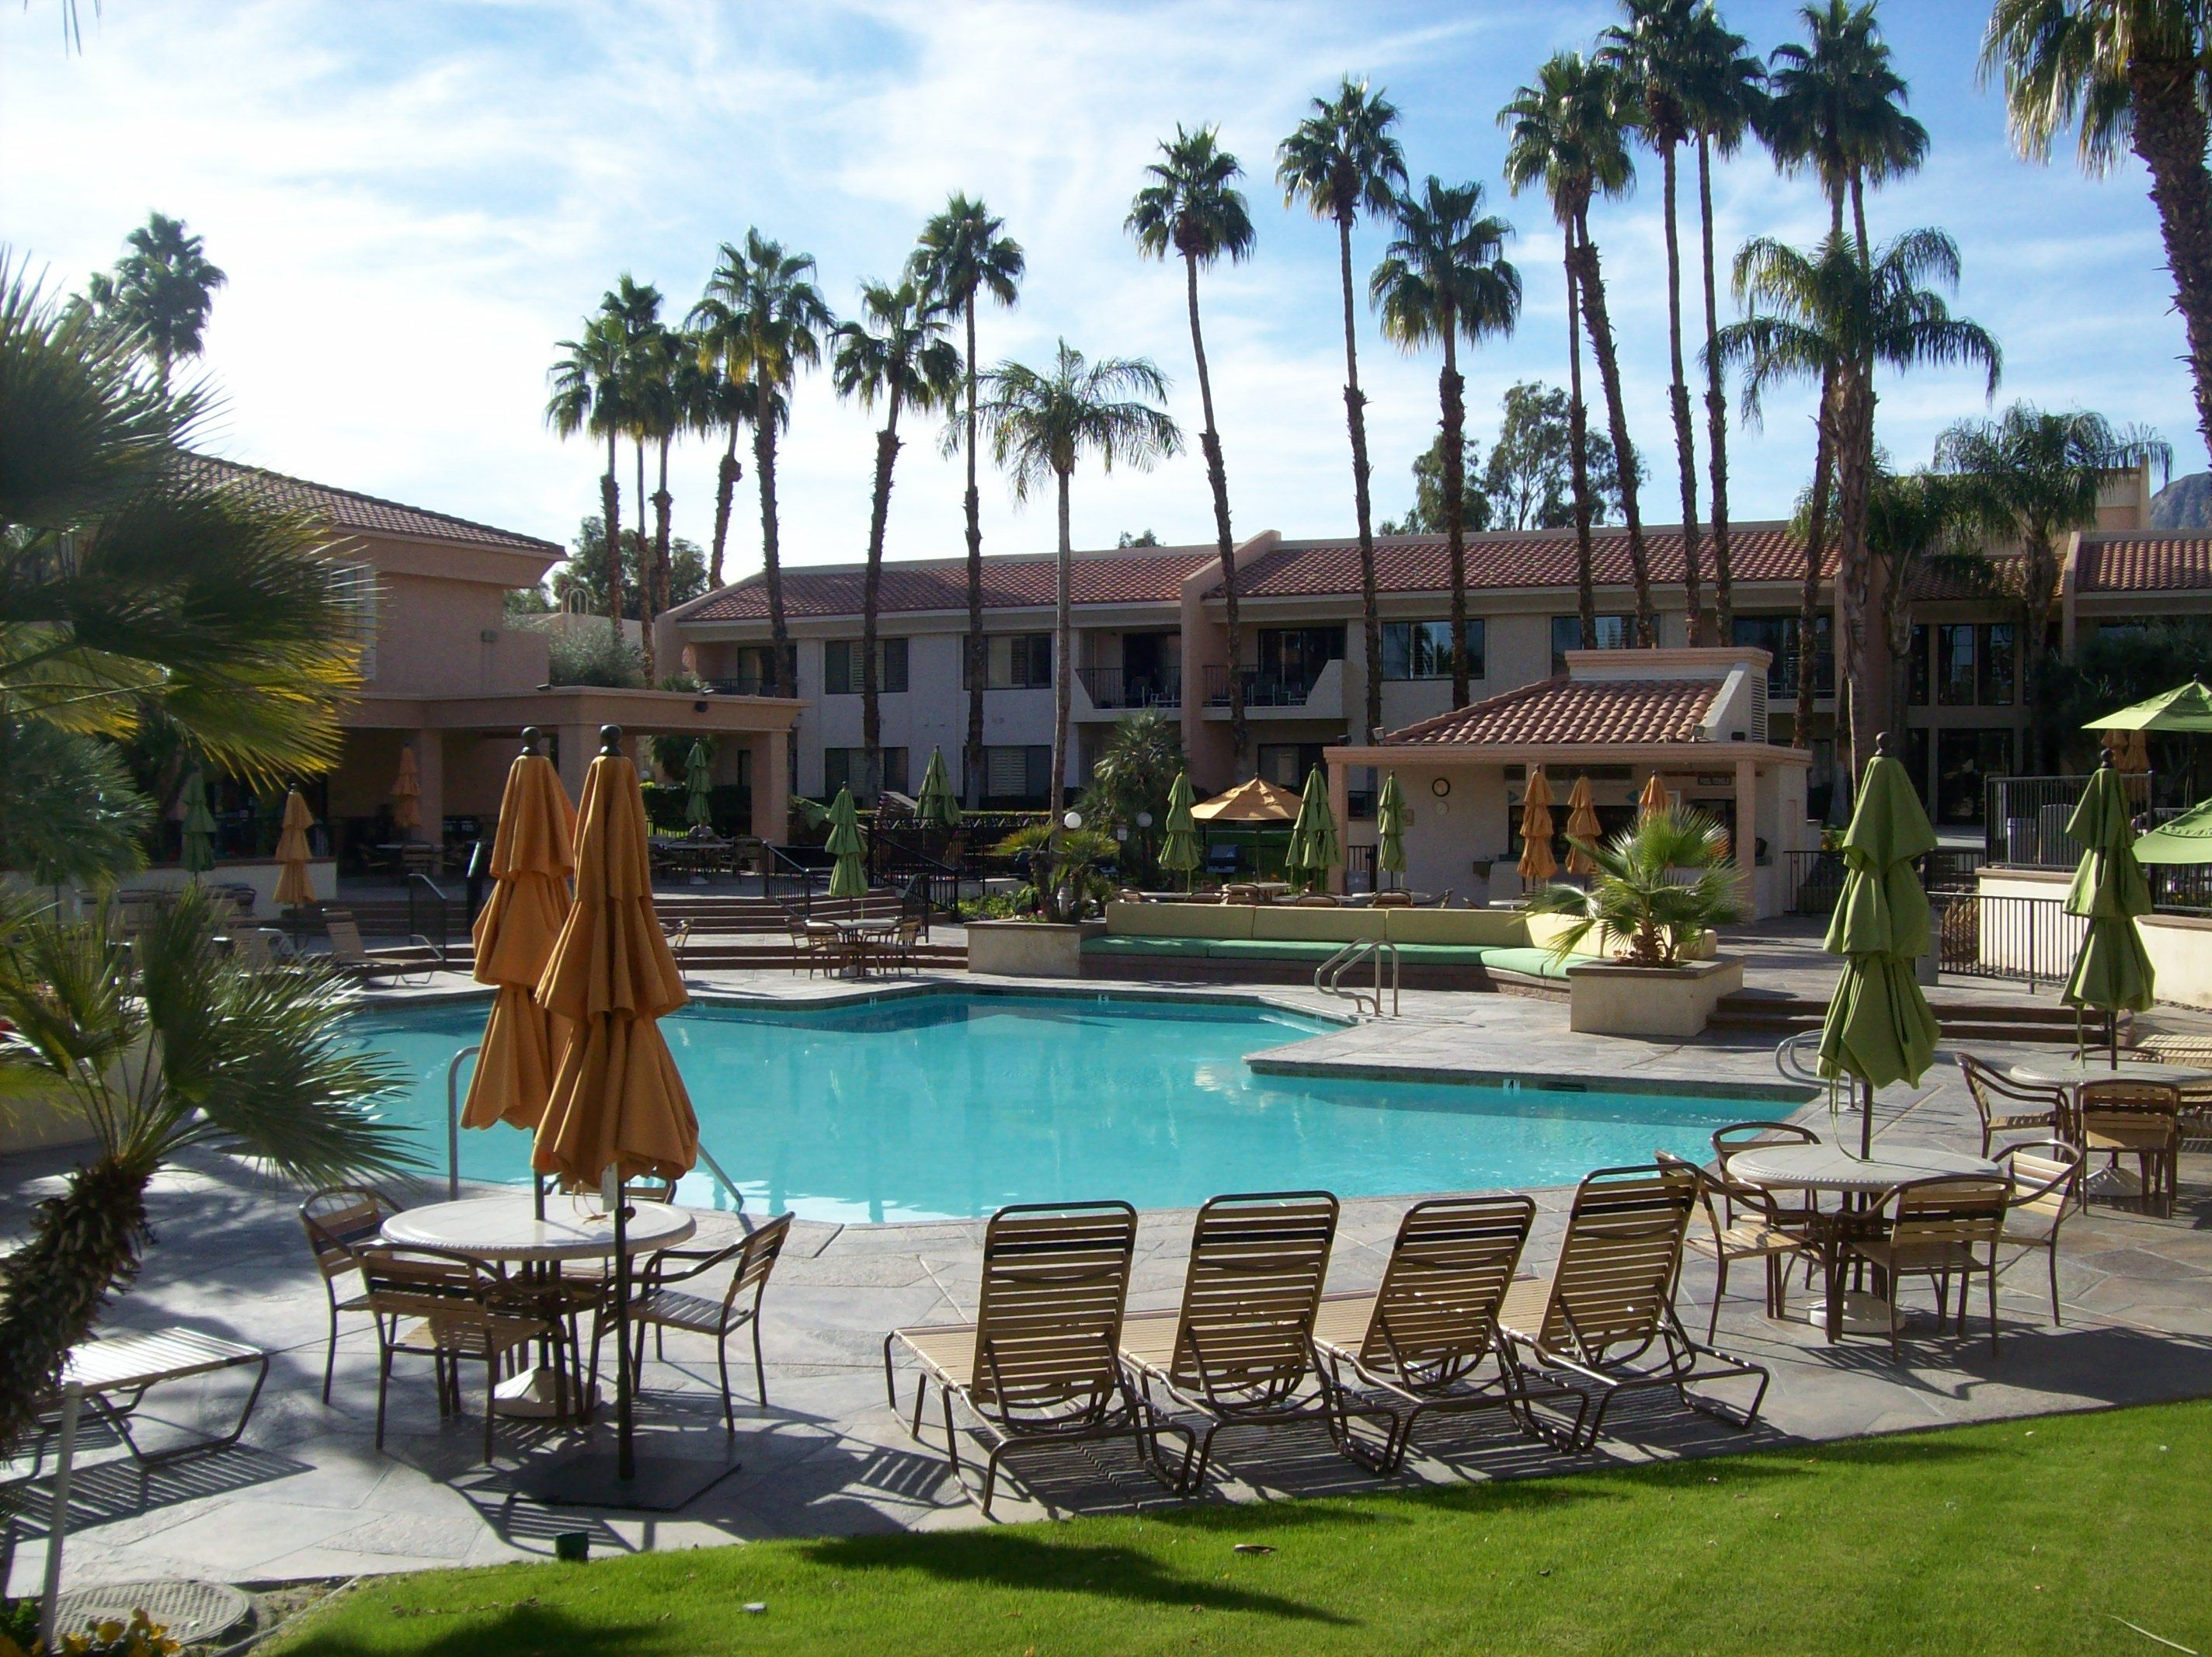 Great day to spend by the pool http//welkresorts.com/palm ...